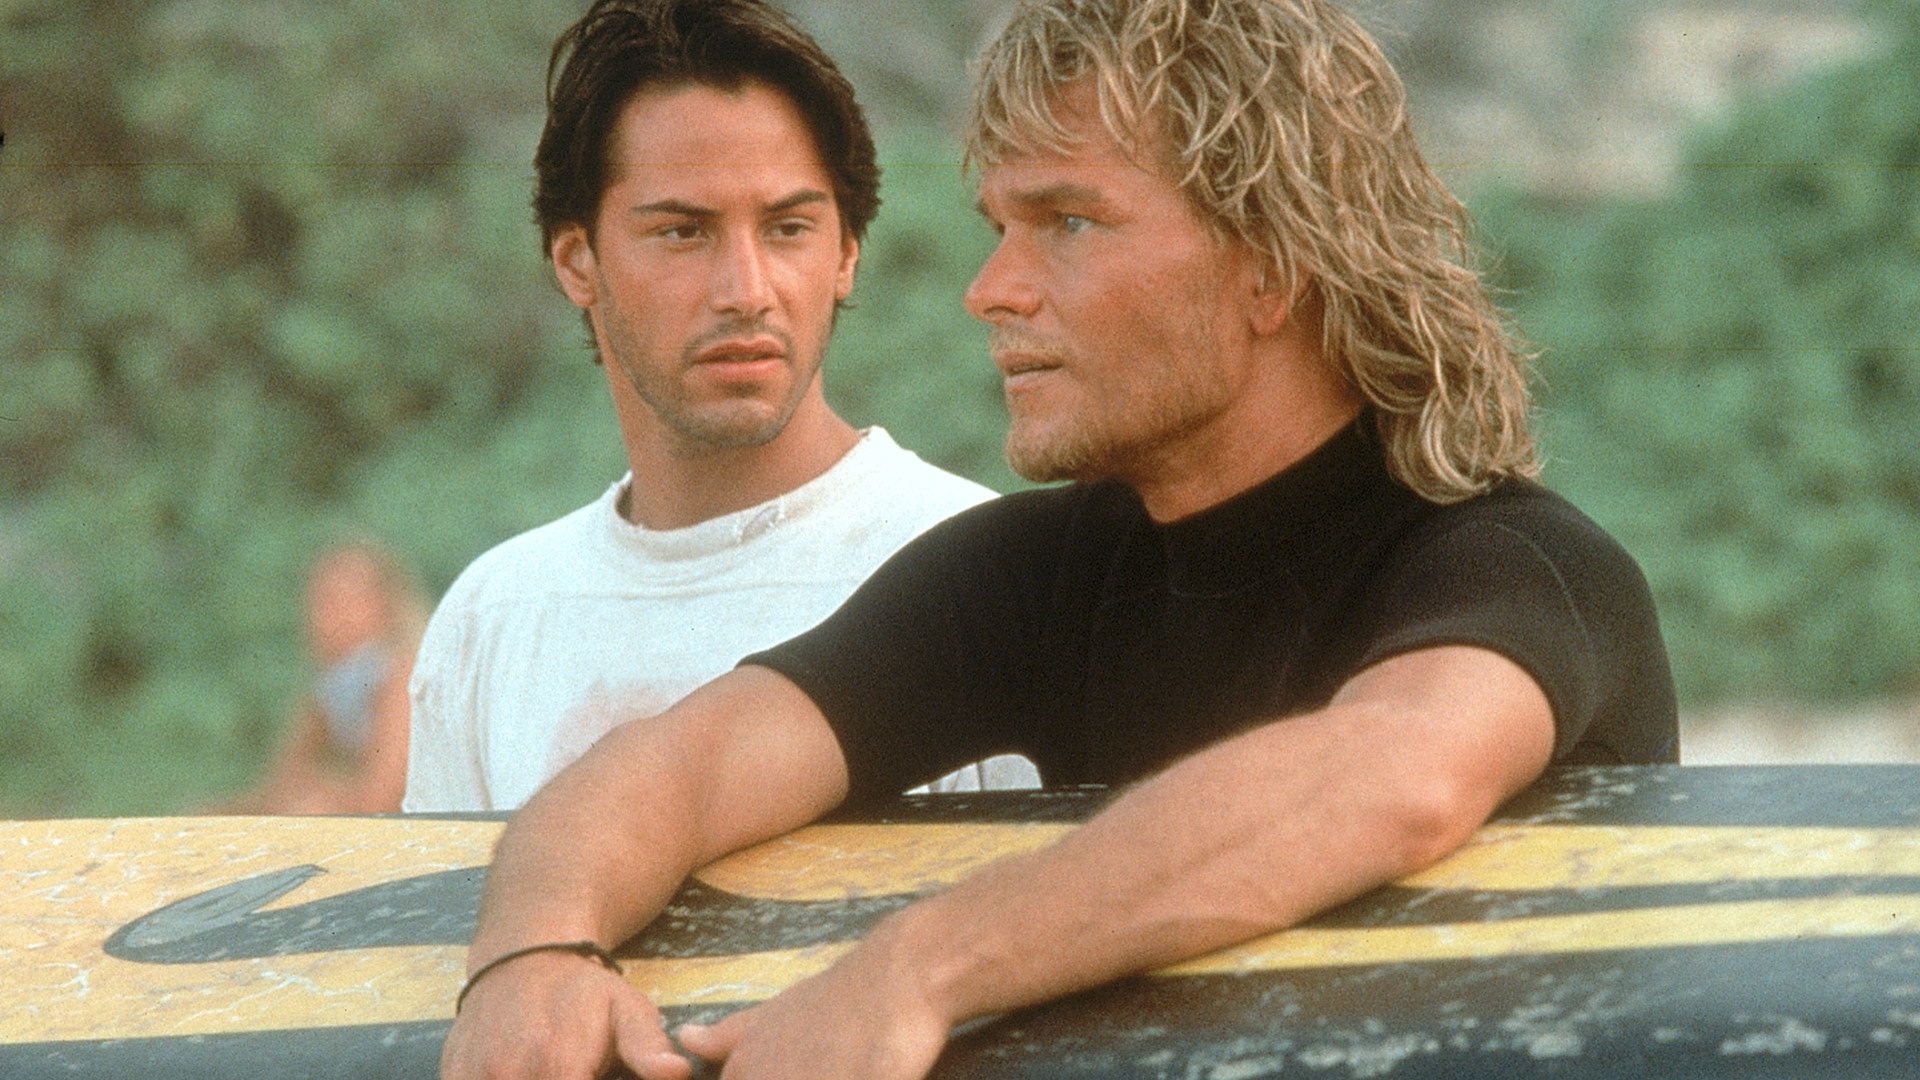 5 FACTS YOU NEVER KNEW ABOUT POINT BREAK